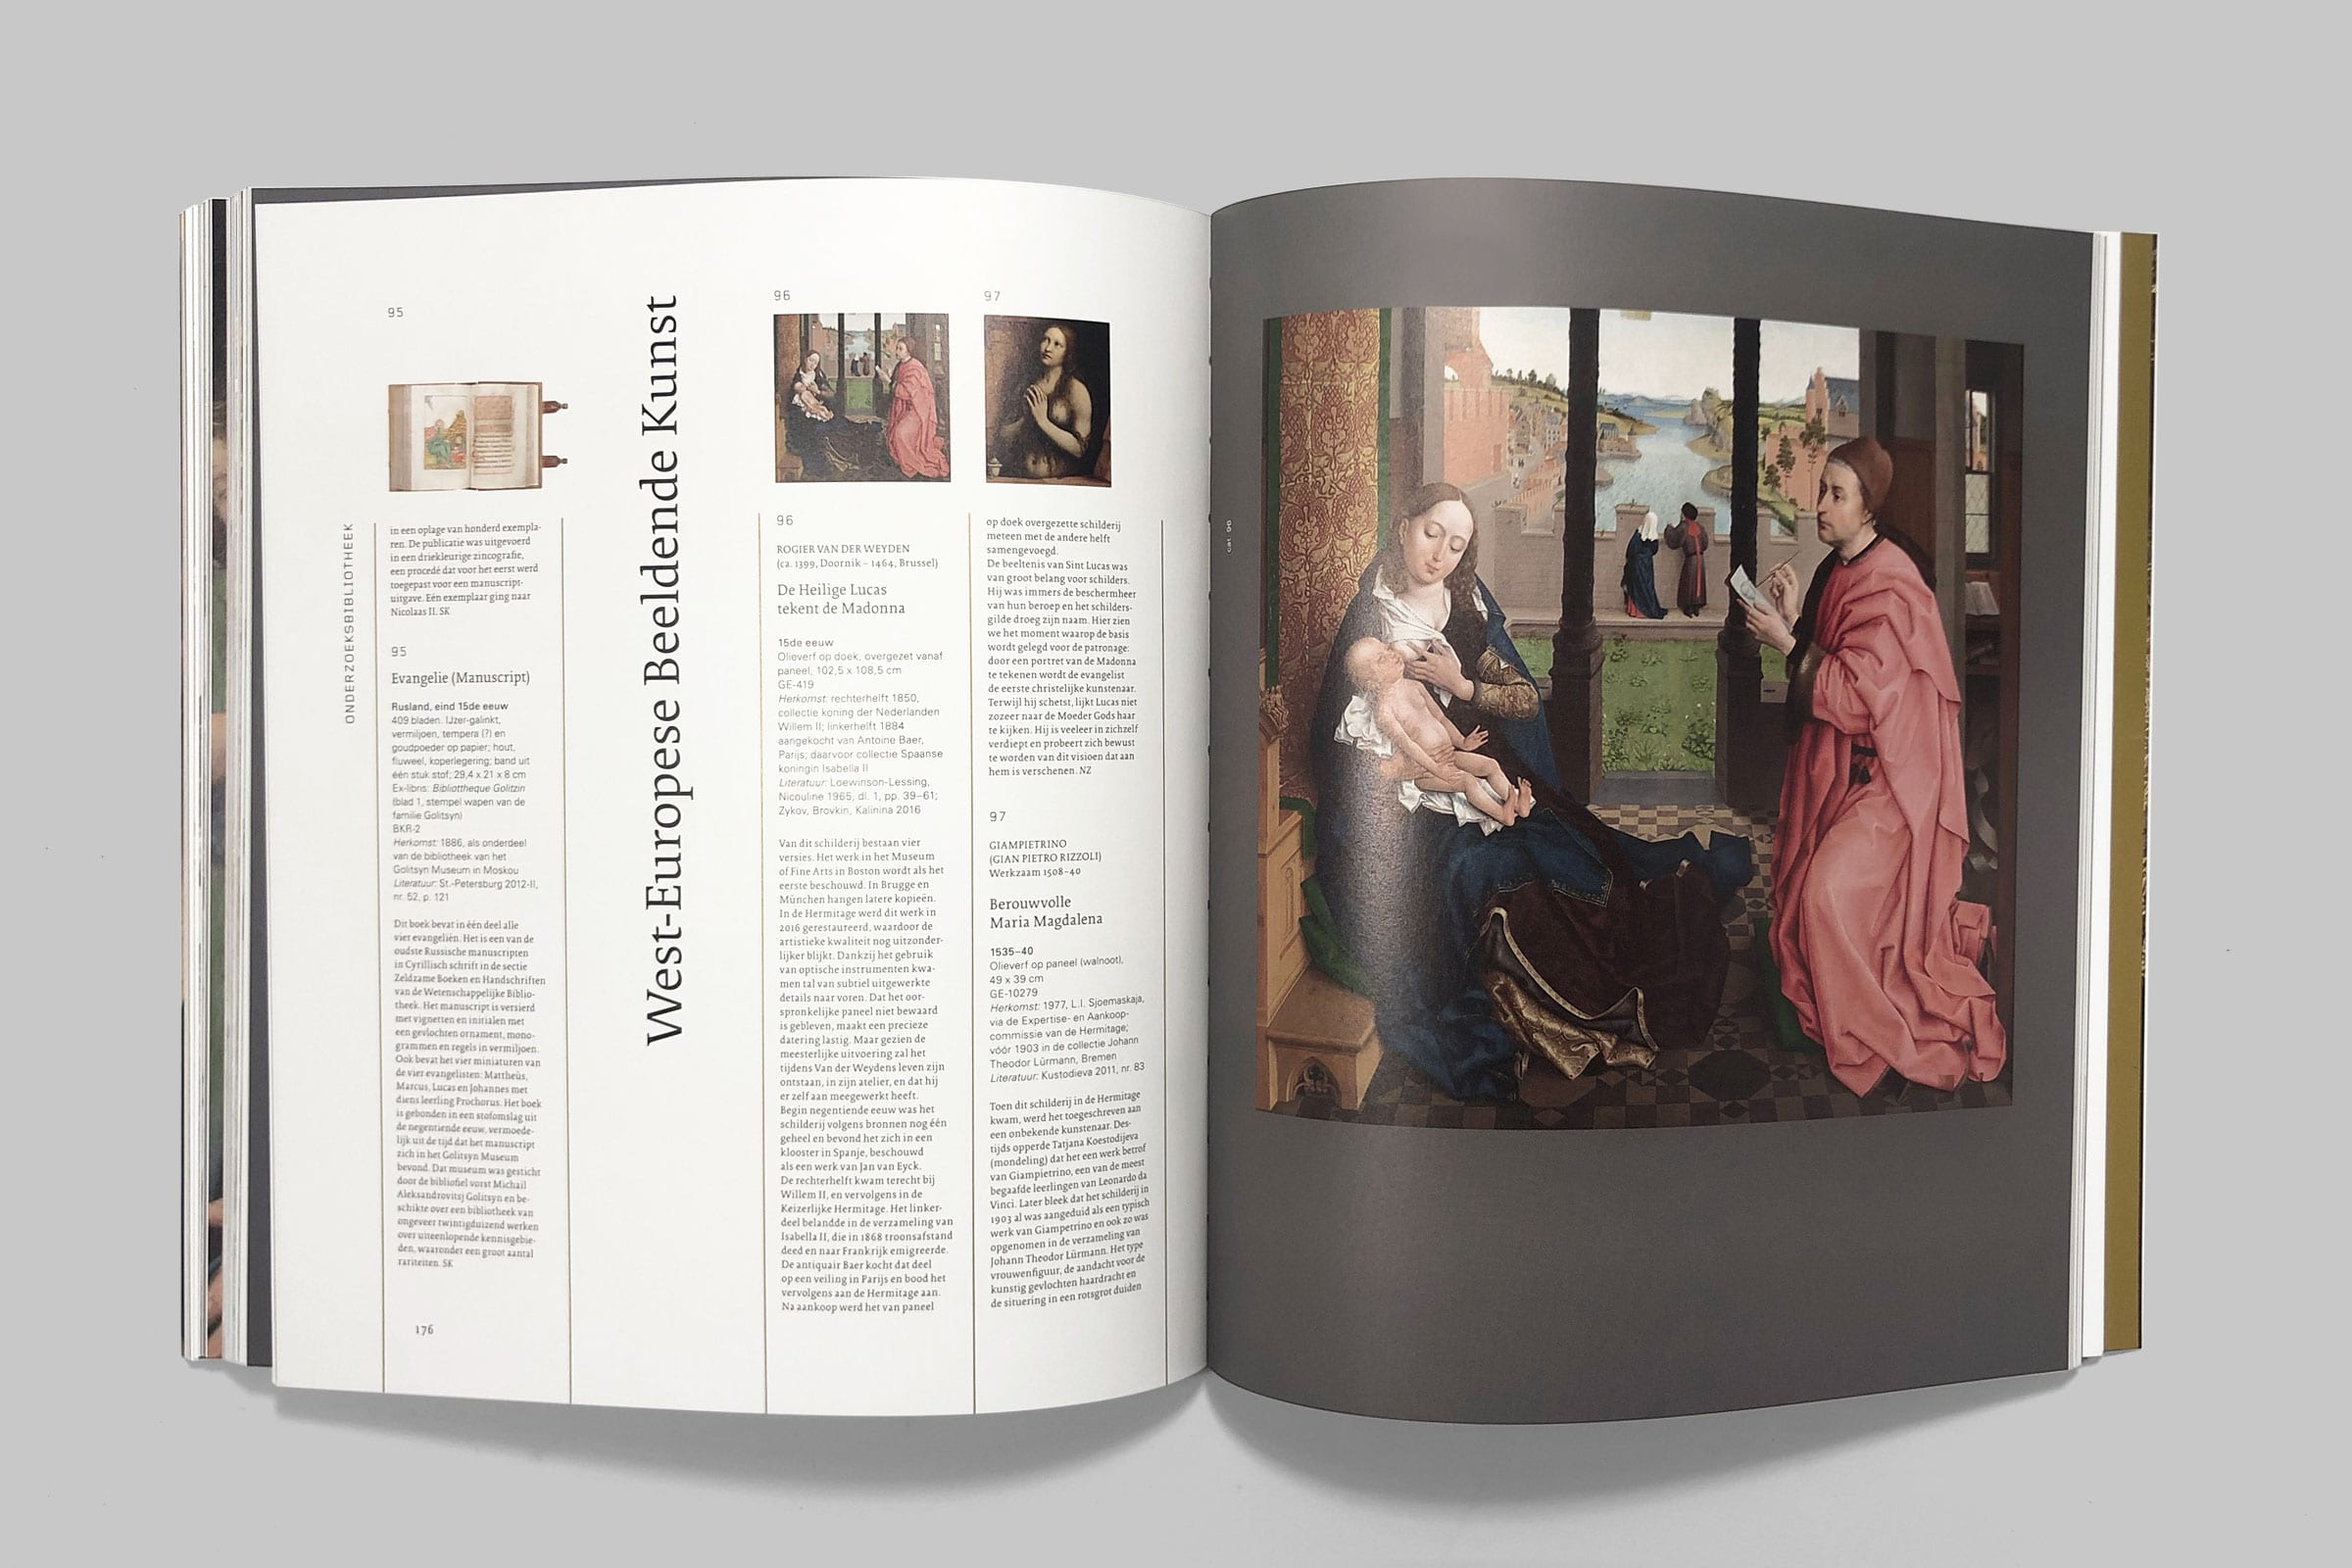 Gebr. Silvestri Hermitage Amsterdam – 'Treasury! Masterpieces from the Hermitage'